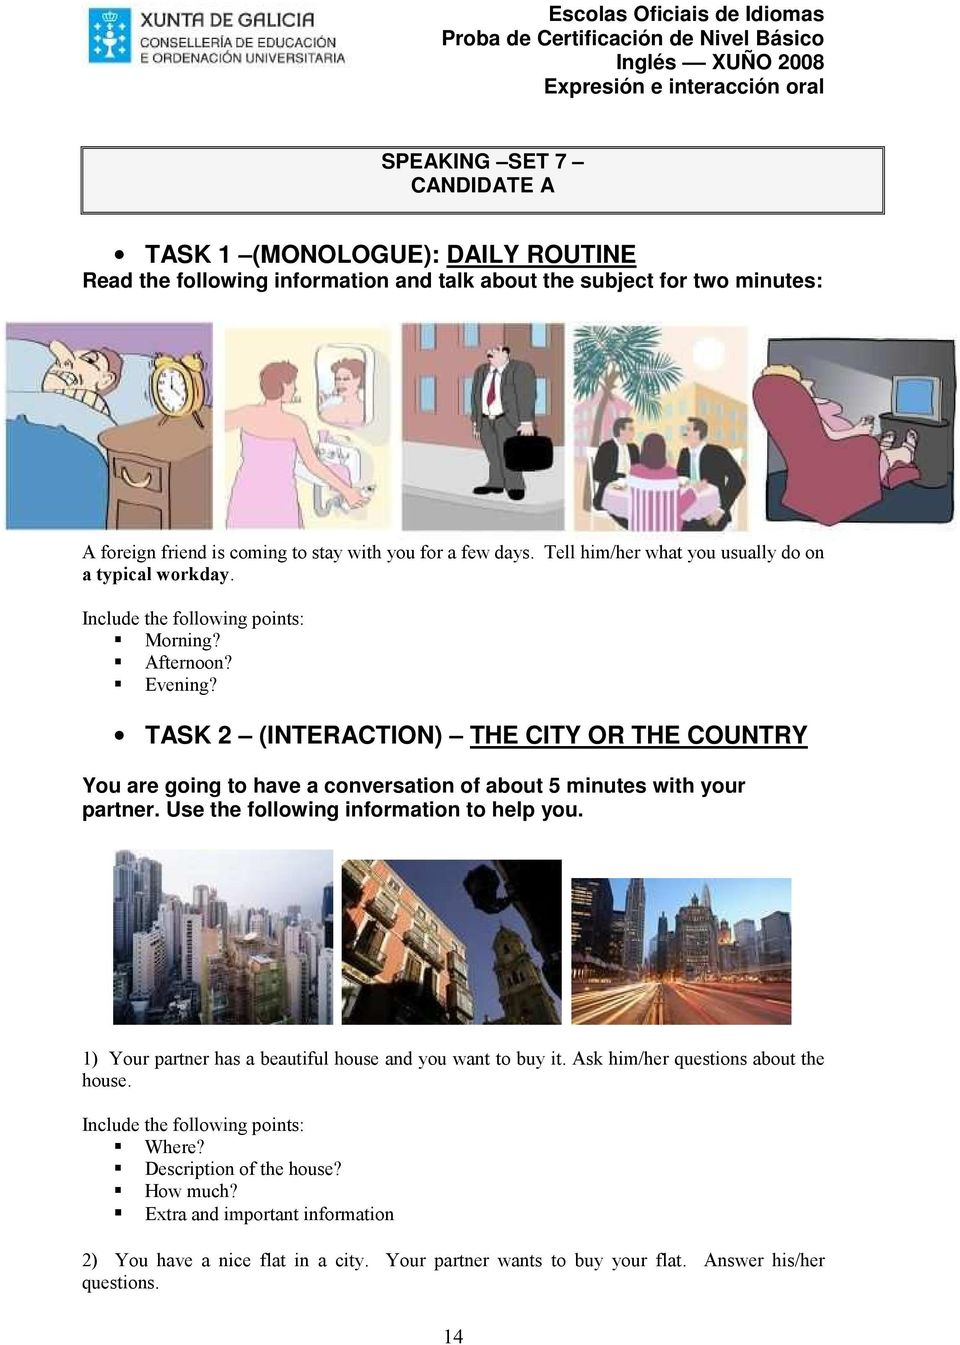 TASK 2 (INTERACTION) THE CITY OR THE COUNTRY 1) Your partner has a beautiful house and you want to buy it.